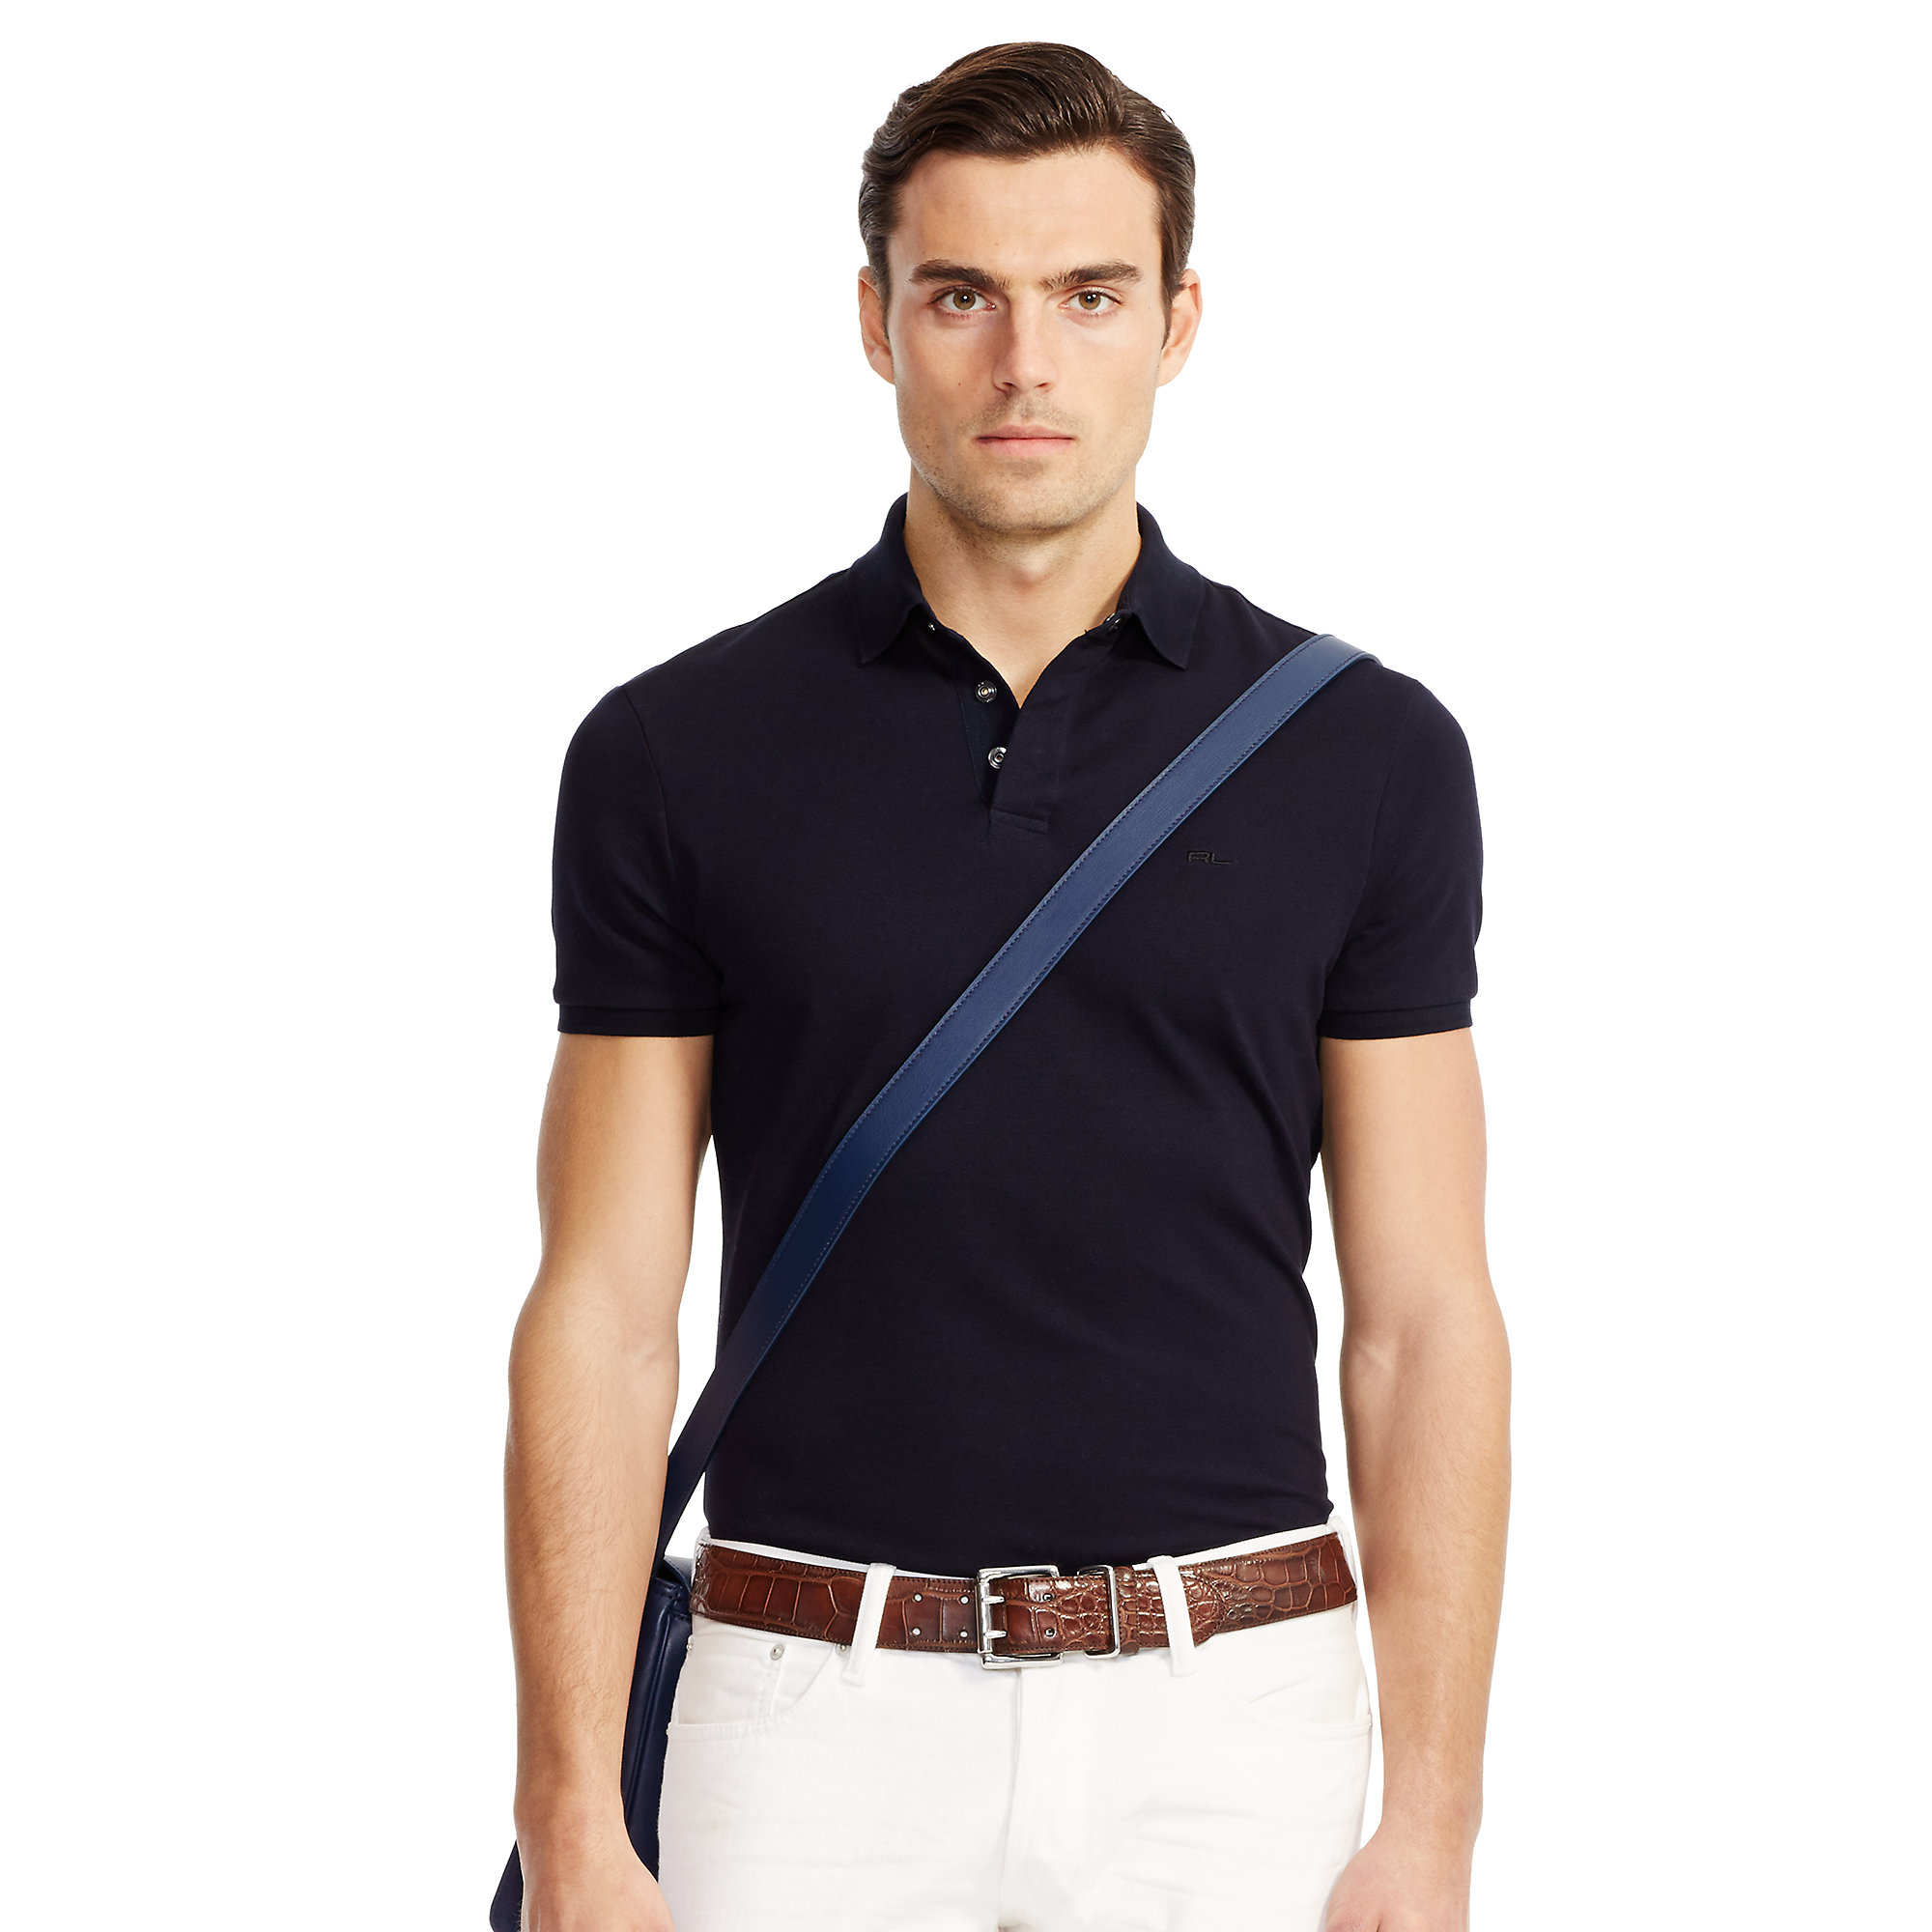 Ralph lauren black label stretch cotton polo shirt in blue for Stretch polo shirt mens